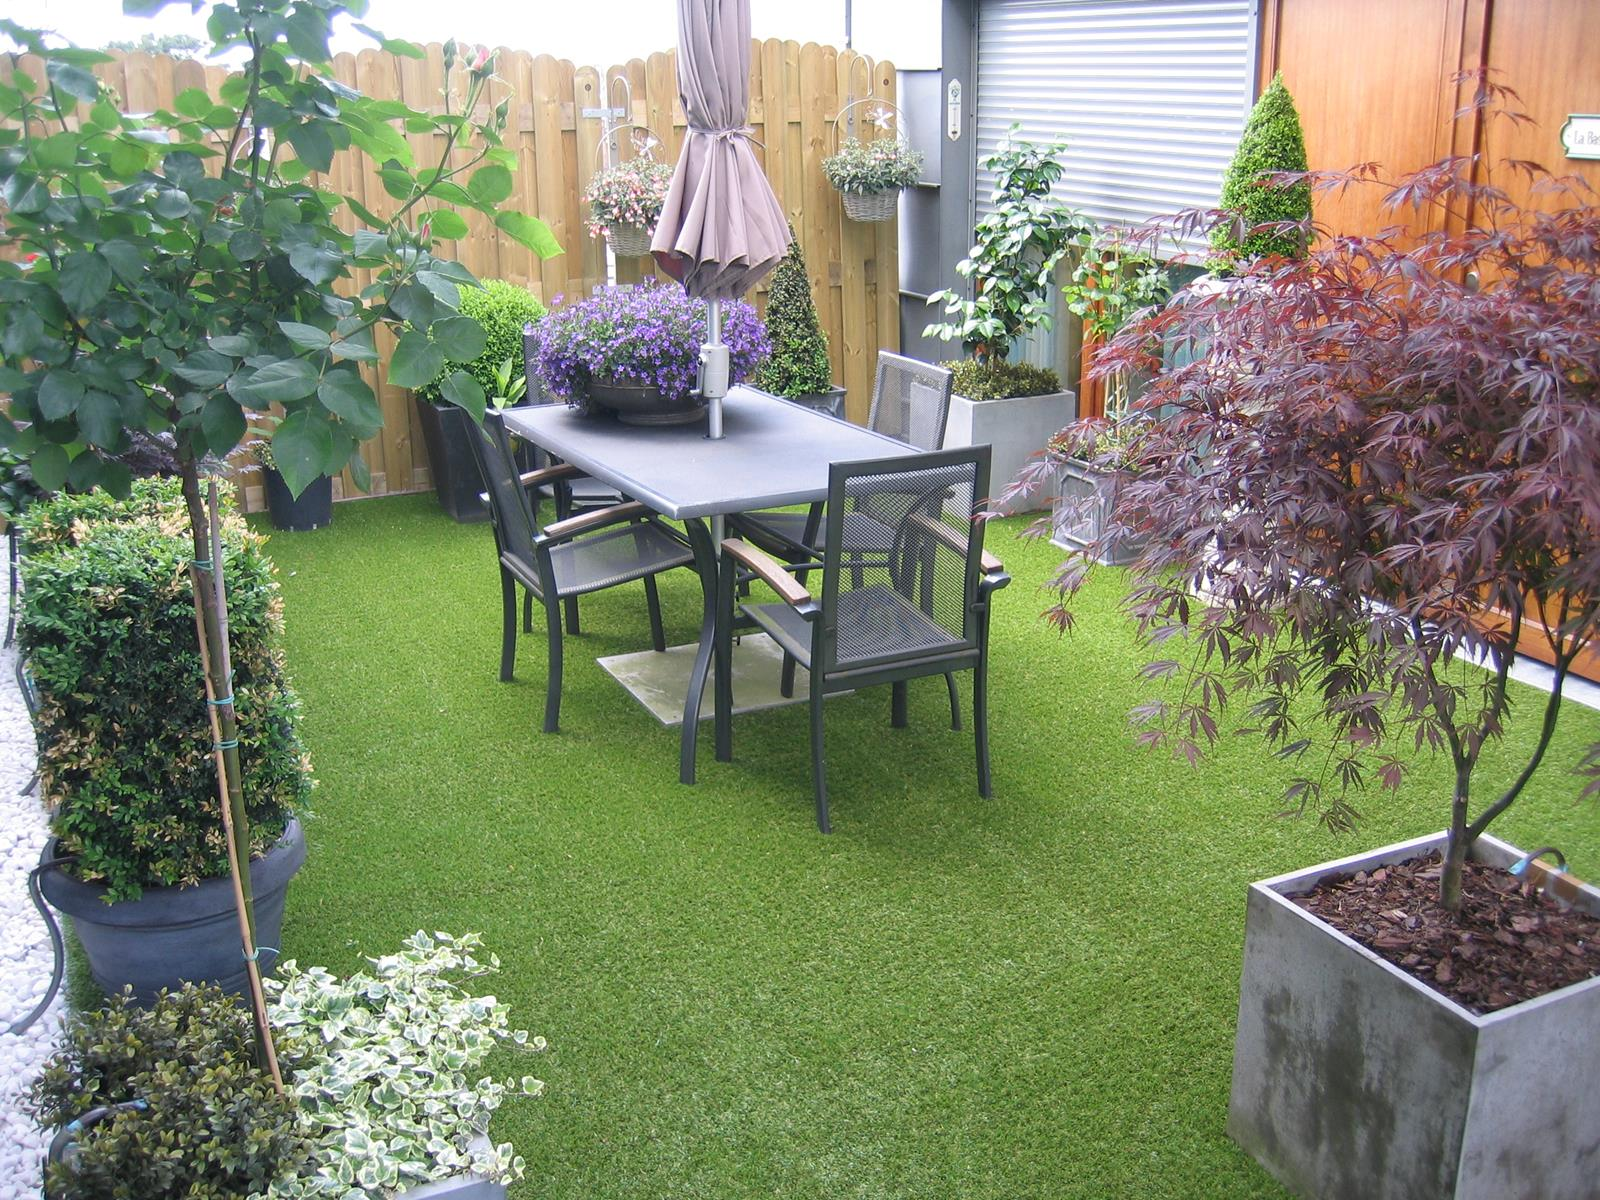 Exemples de pose de gazon synth tique chez nos clients greenside blog - Pelouse synthetique pour terrasse ...